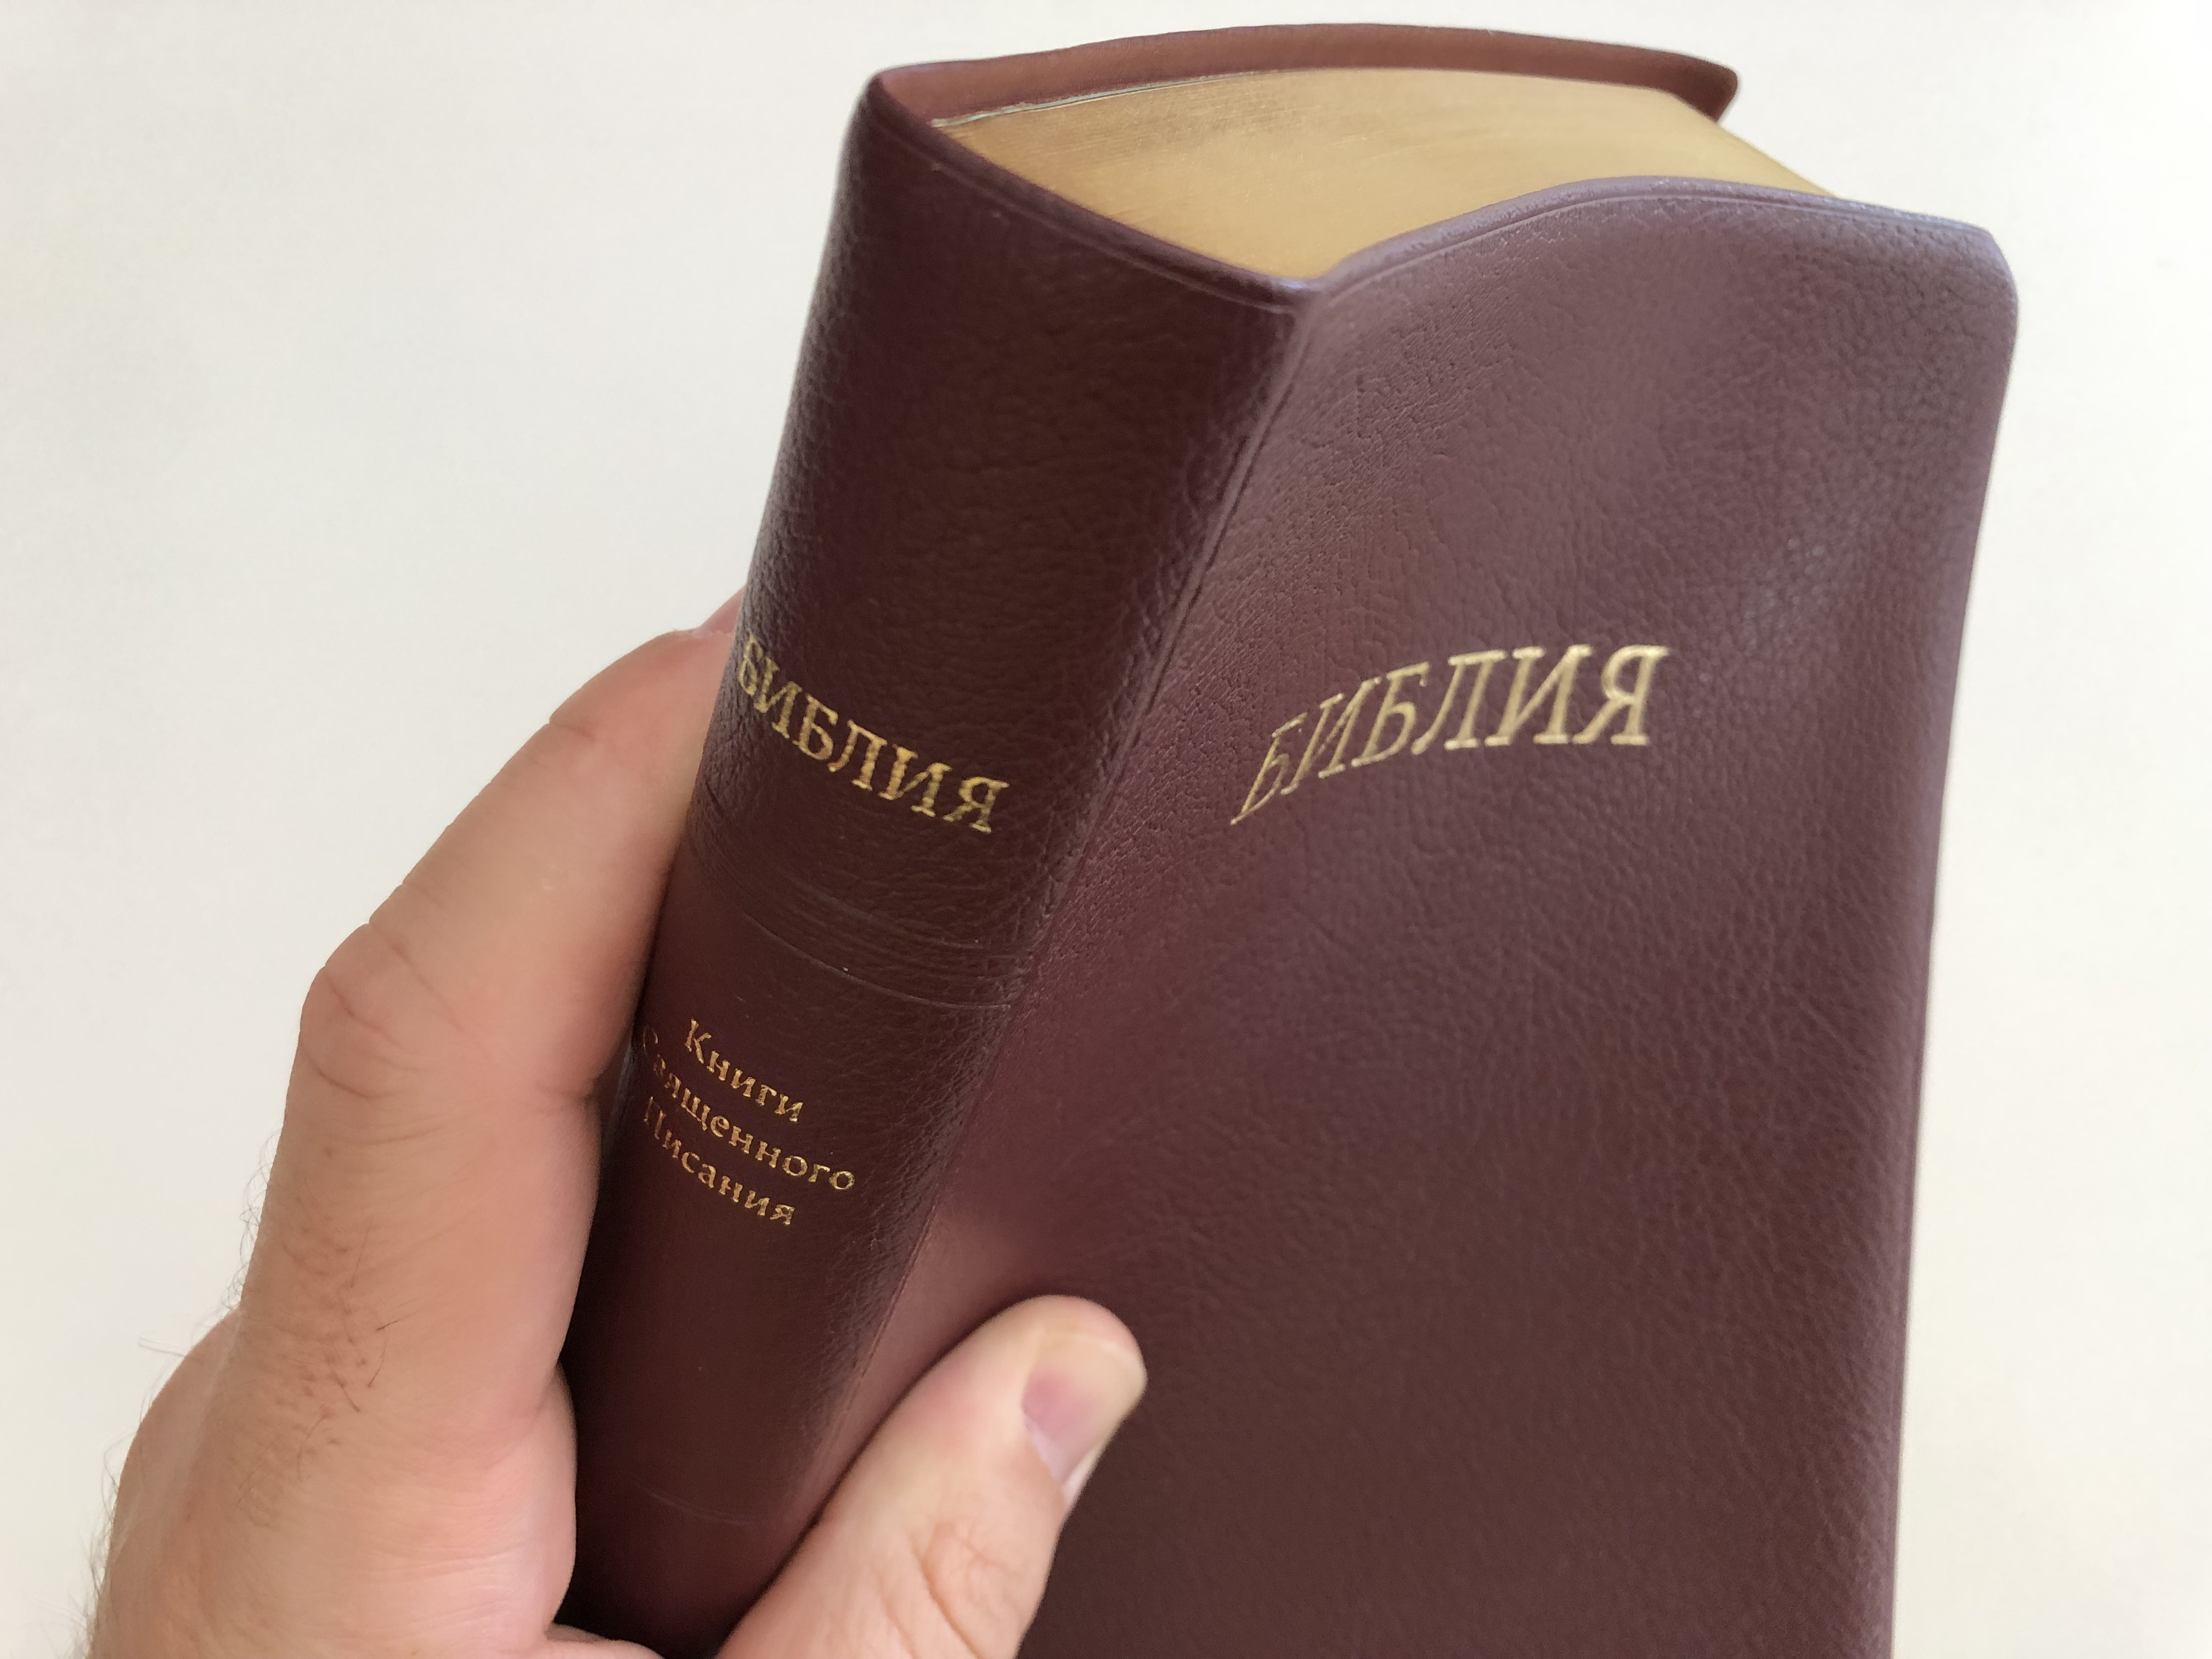 russian-language-holy-bible-synodal-translation-ukrainian-bible-society-2012-vinyl-bound-golden-edges-thumb-index-19-.jpg